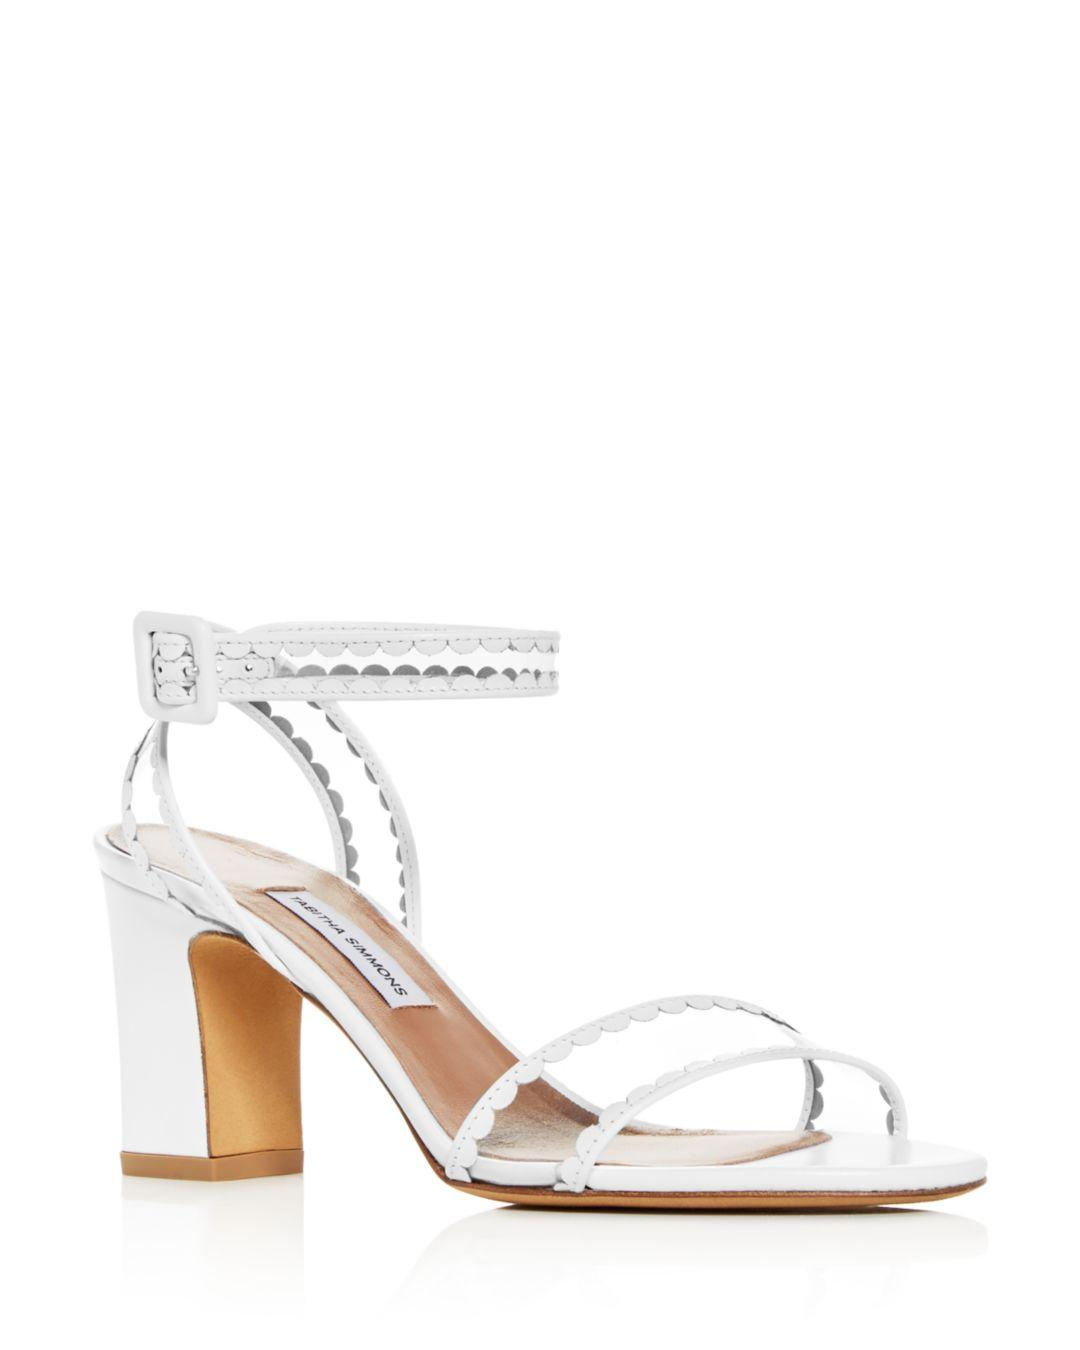 a17b9791bde Tabitha Simmons. White Women s Leticia Scallop Trim High-heel Sandals